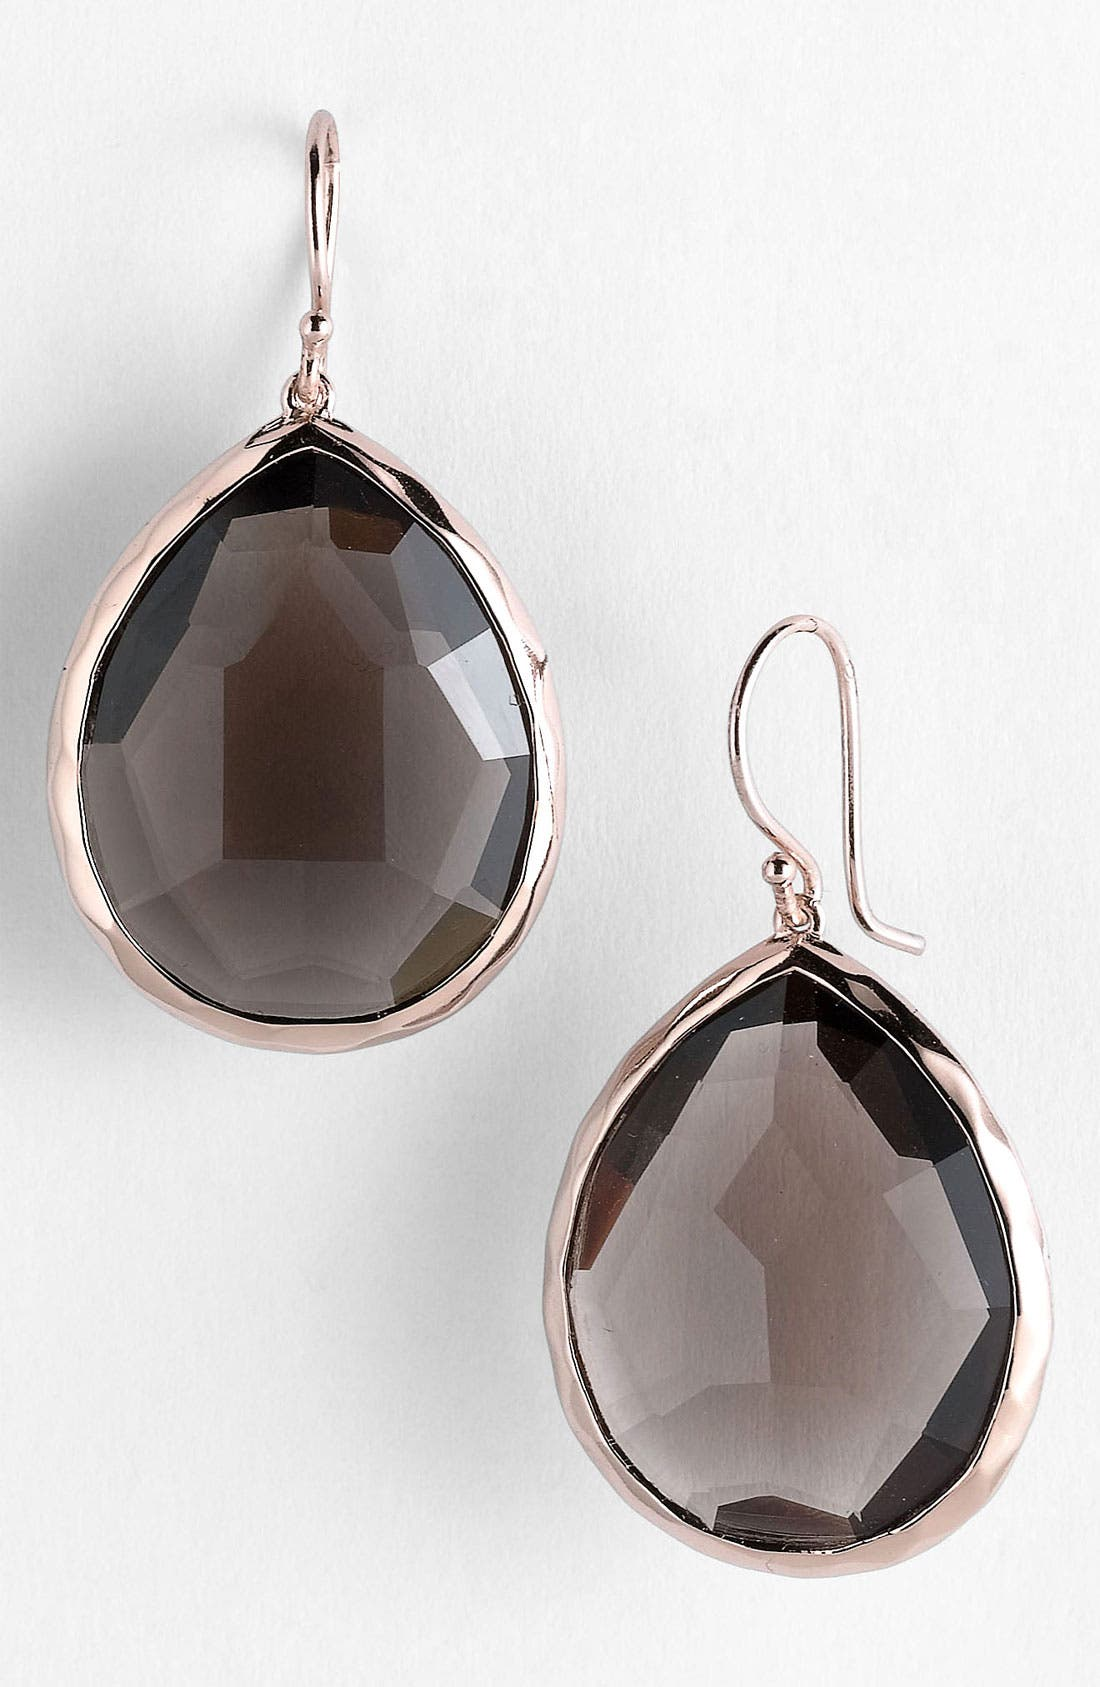 Main Image - Ippolita 'Rock Candy' Rosé Large Teardrop Earrings